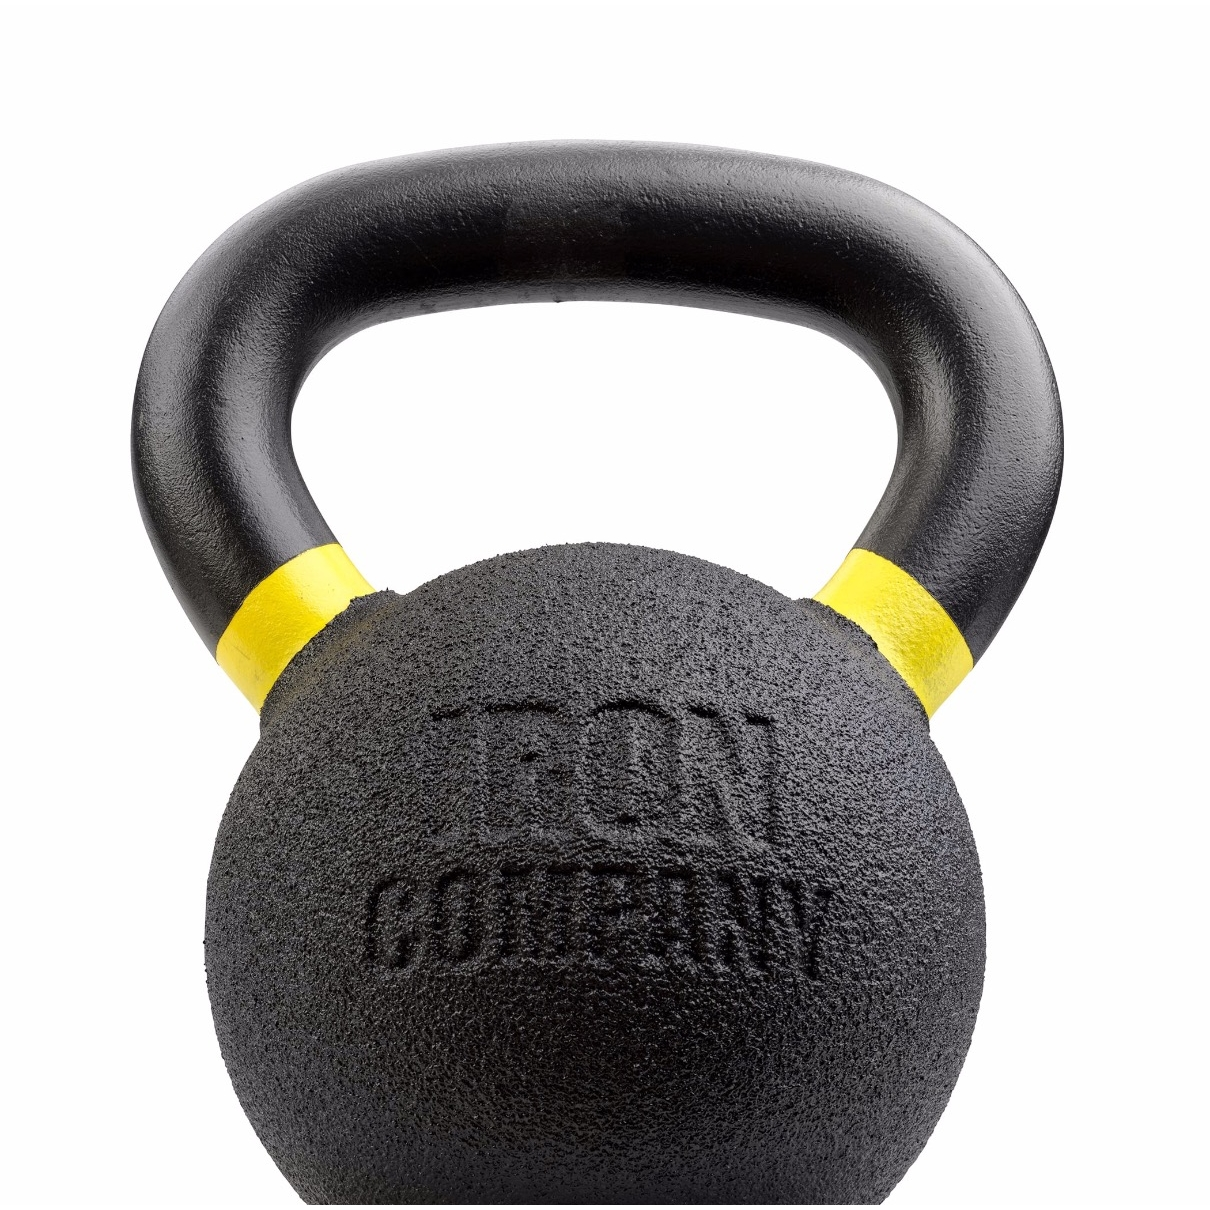 Urethane Coated Kettlebell by IRON COMPANY